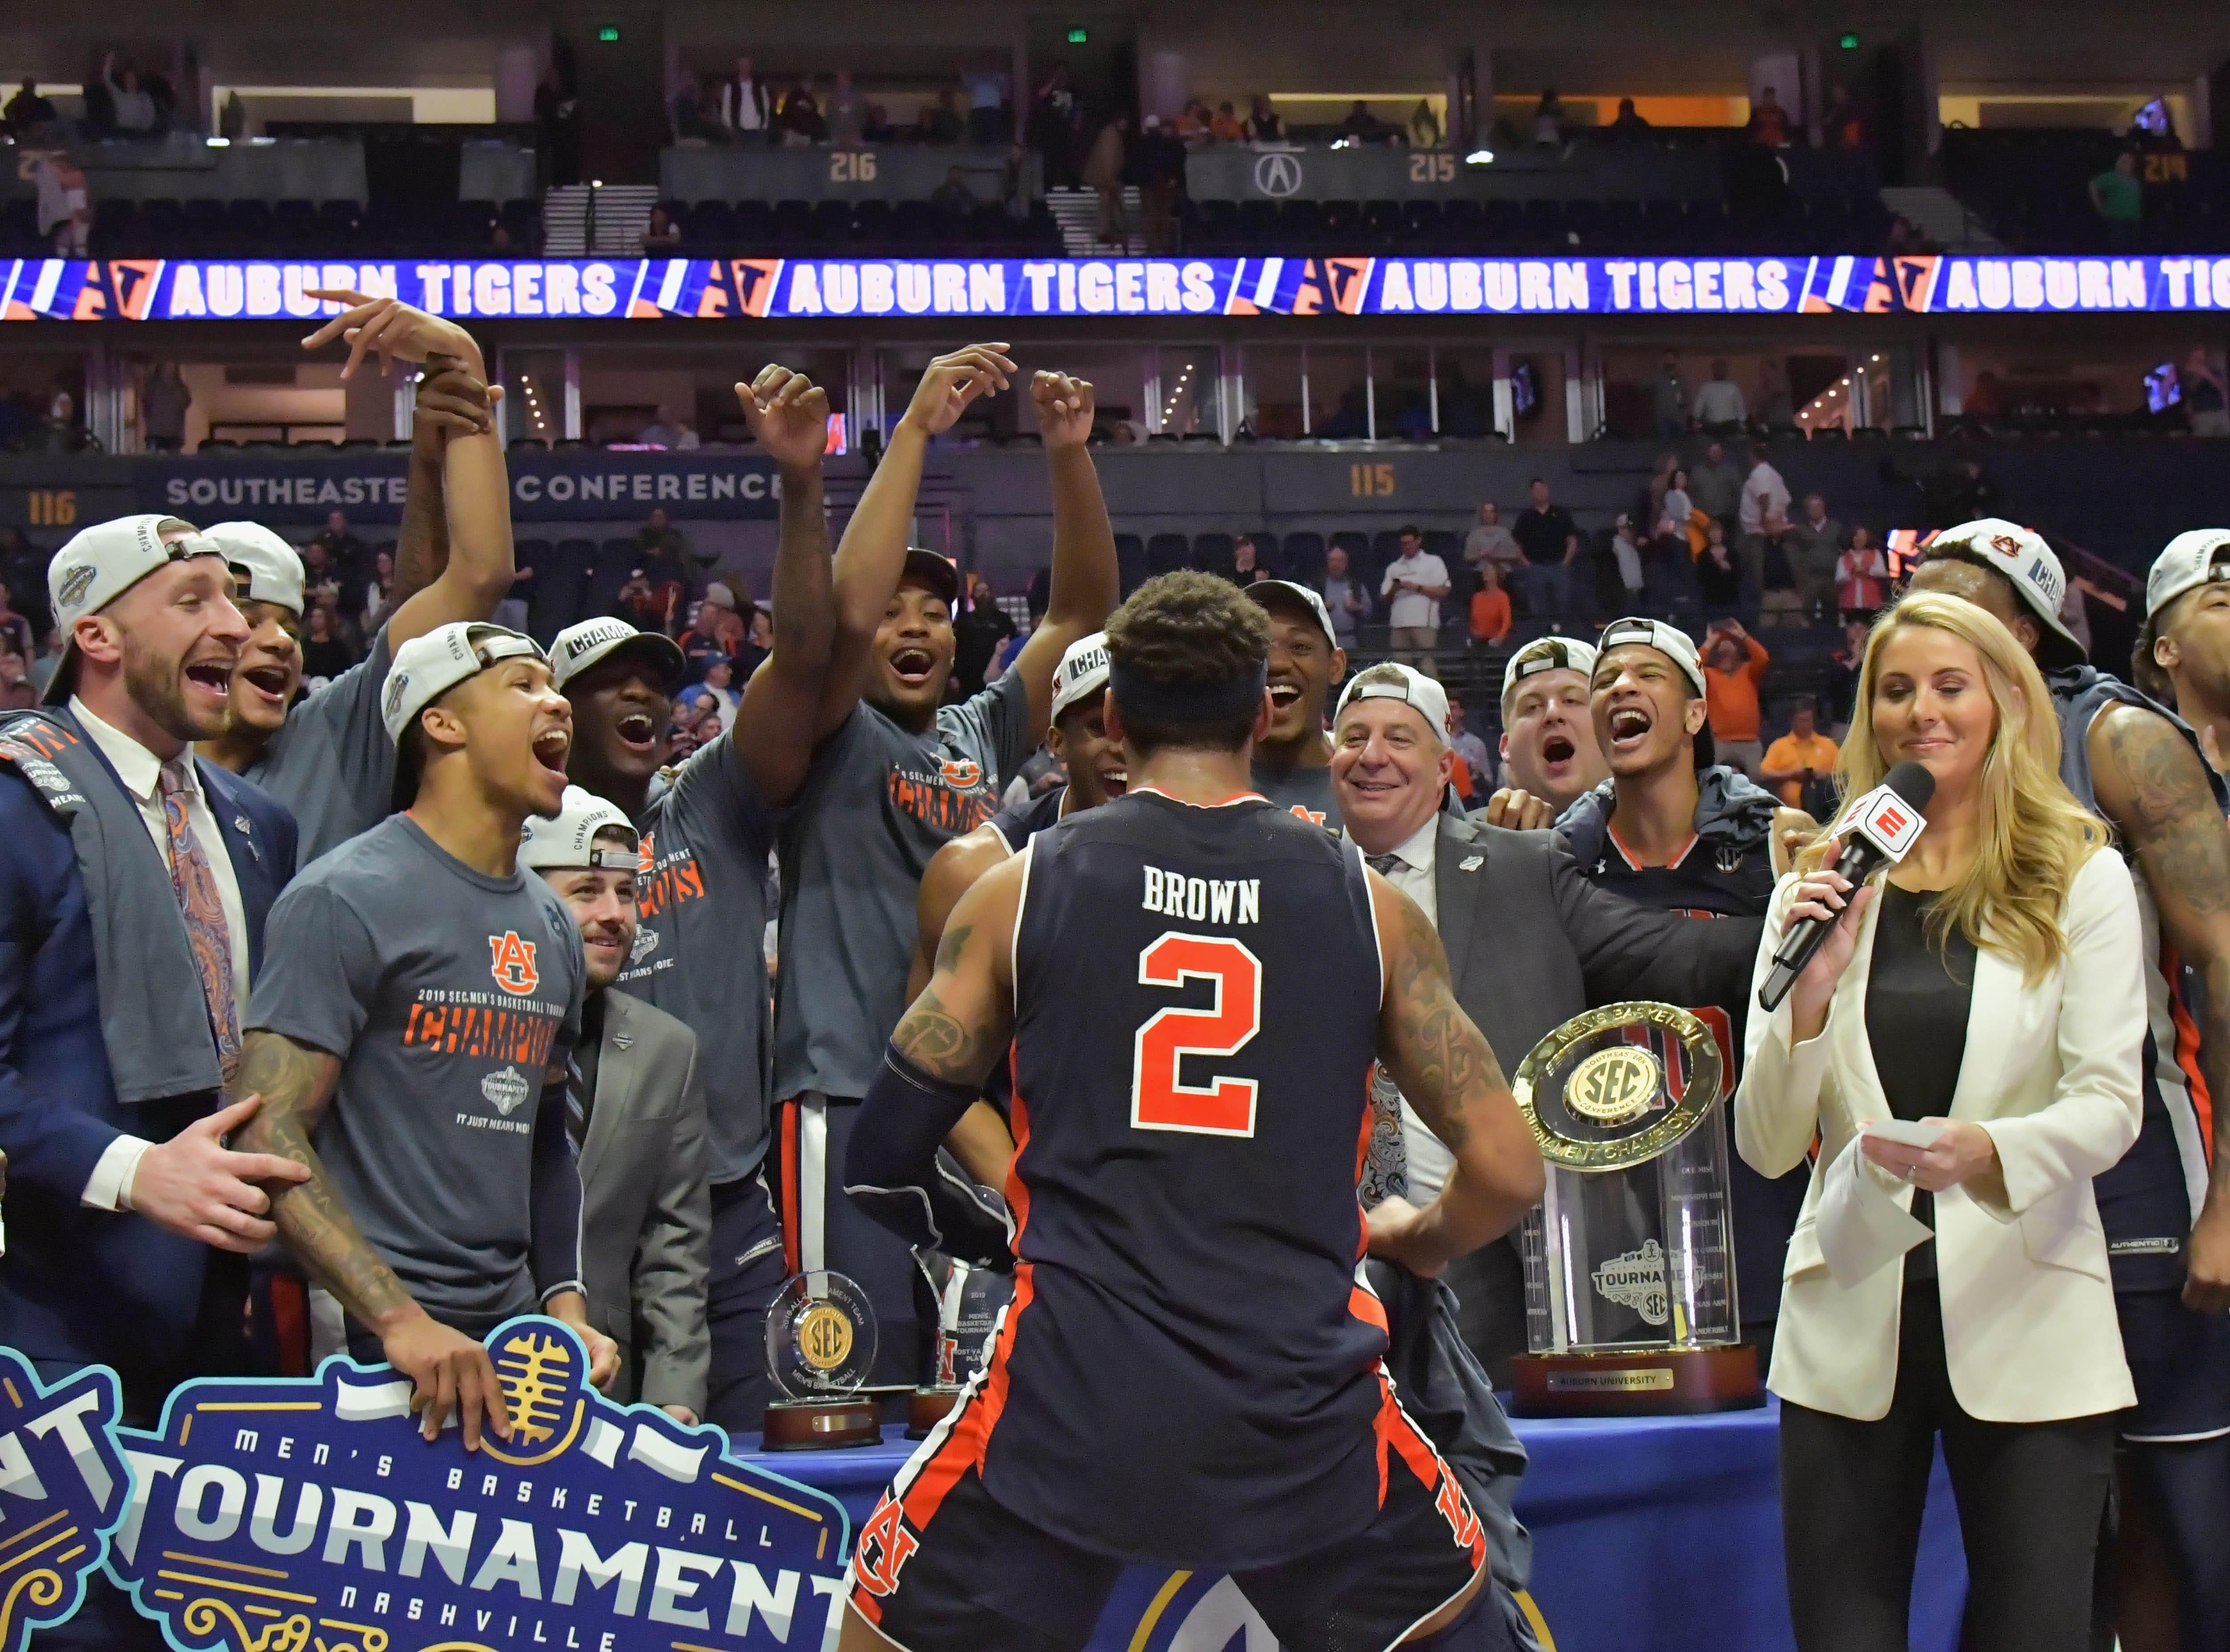 Mar 17, 2019; Nashville, TN, USA; Auburn Tigers guard Bryce Brown (2) jumps up onto the platform to join his teammates and Auburn head coach Bruce Pearl prior to the trophy presentation following the championship game between the Tennessee Volunteers and the Auburn Tigers  in the SEC conference tournament at Bridgestone Arena. Auburn won 84-64. Mandatory Credit: Jim Brown-USA TODAY Sports